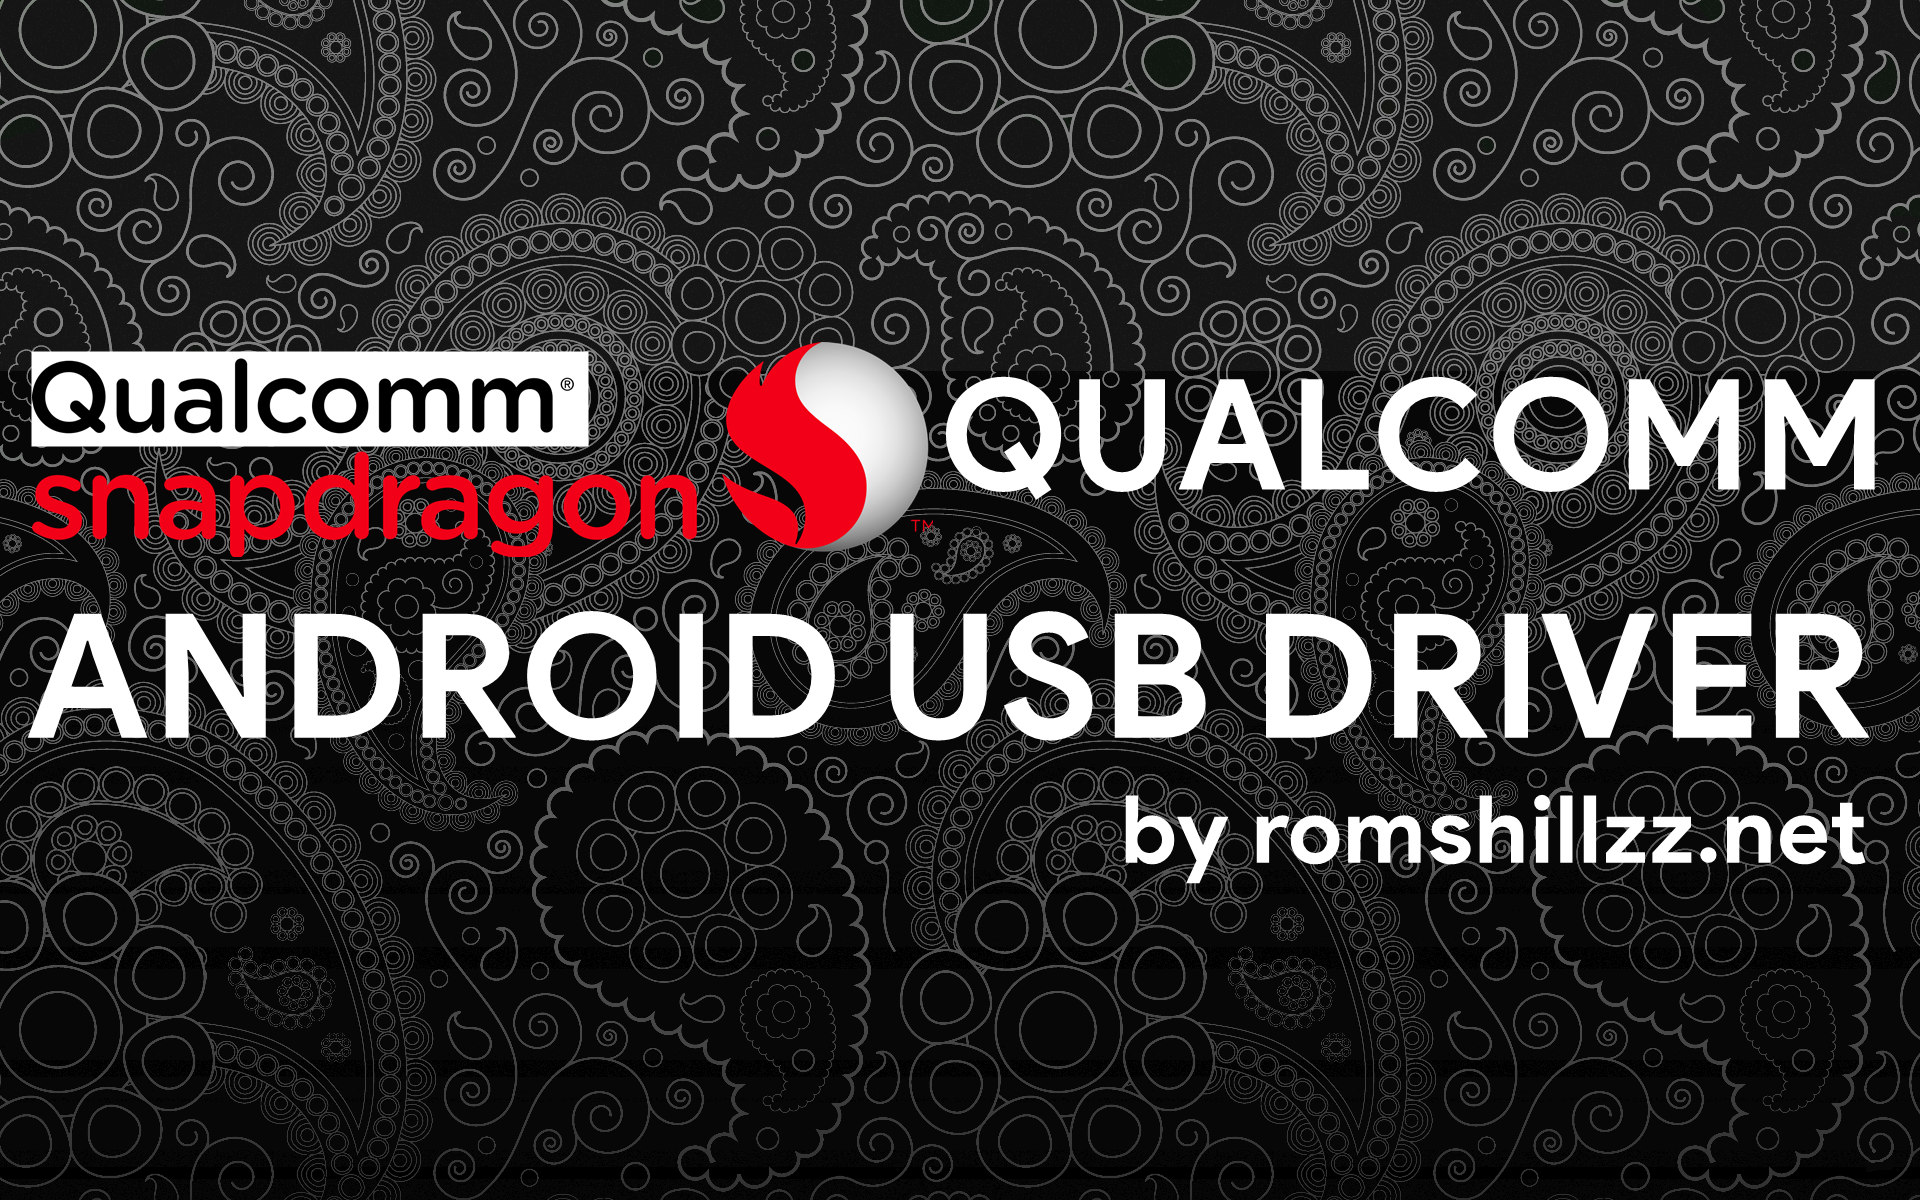 qualcomm-android-usb-driver.png